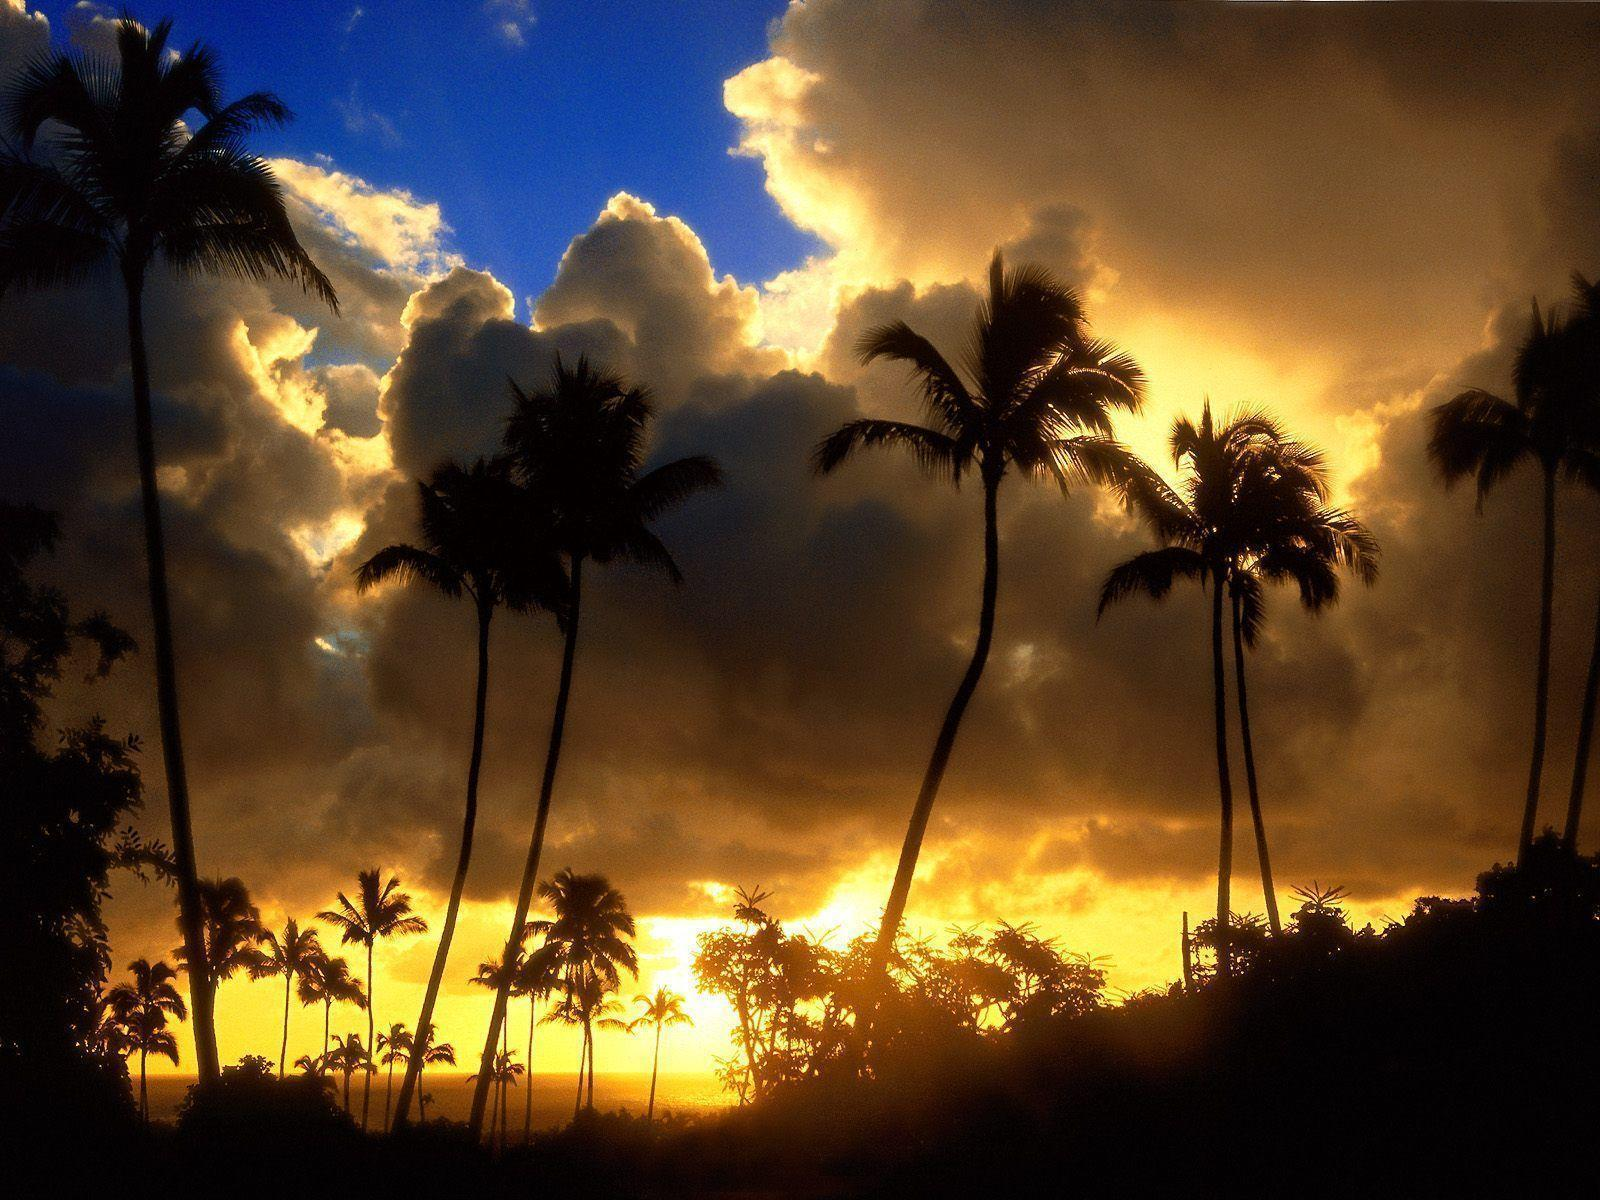 Desktop Wallpapers · Gallery · Travels · Kauai Hawaii